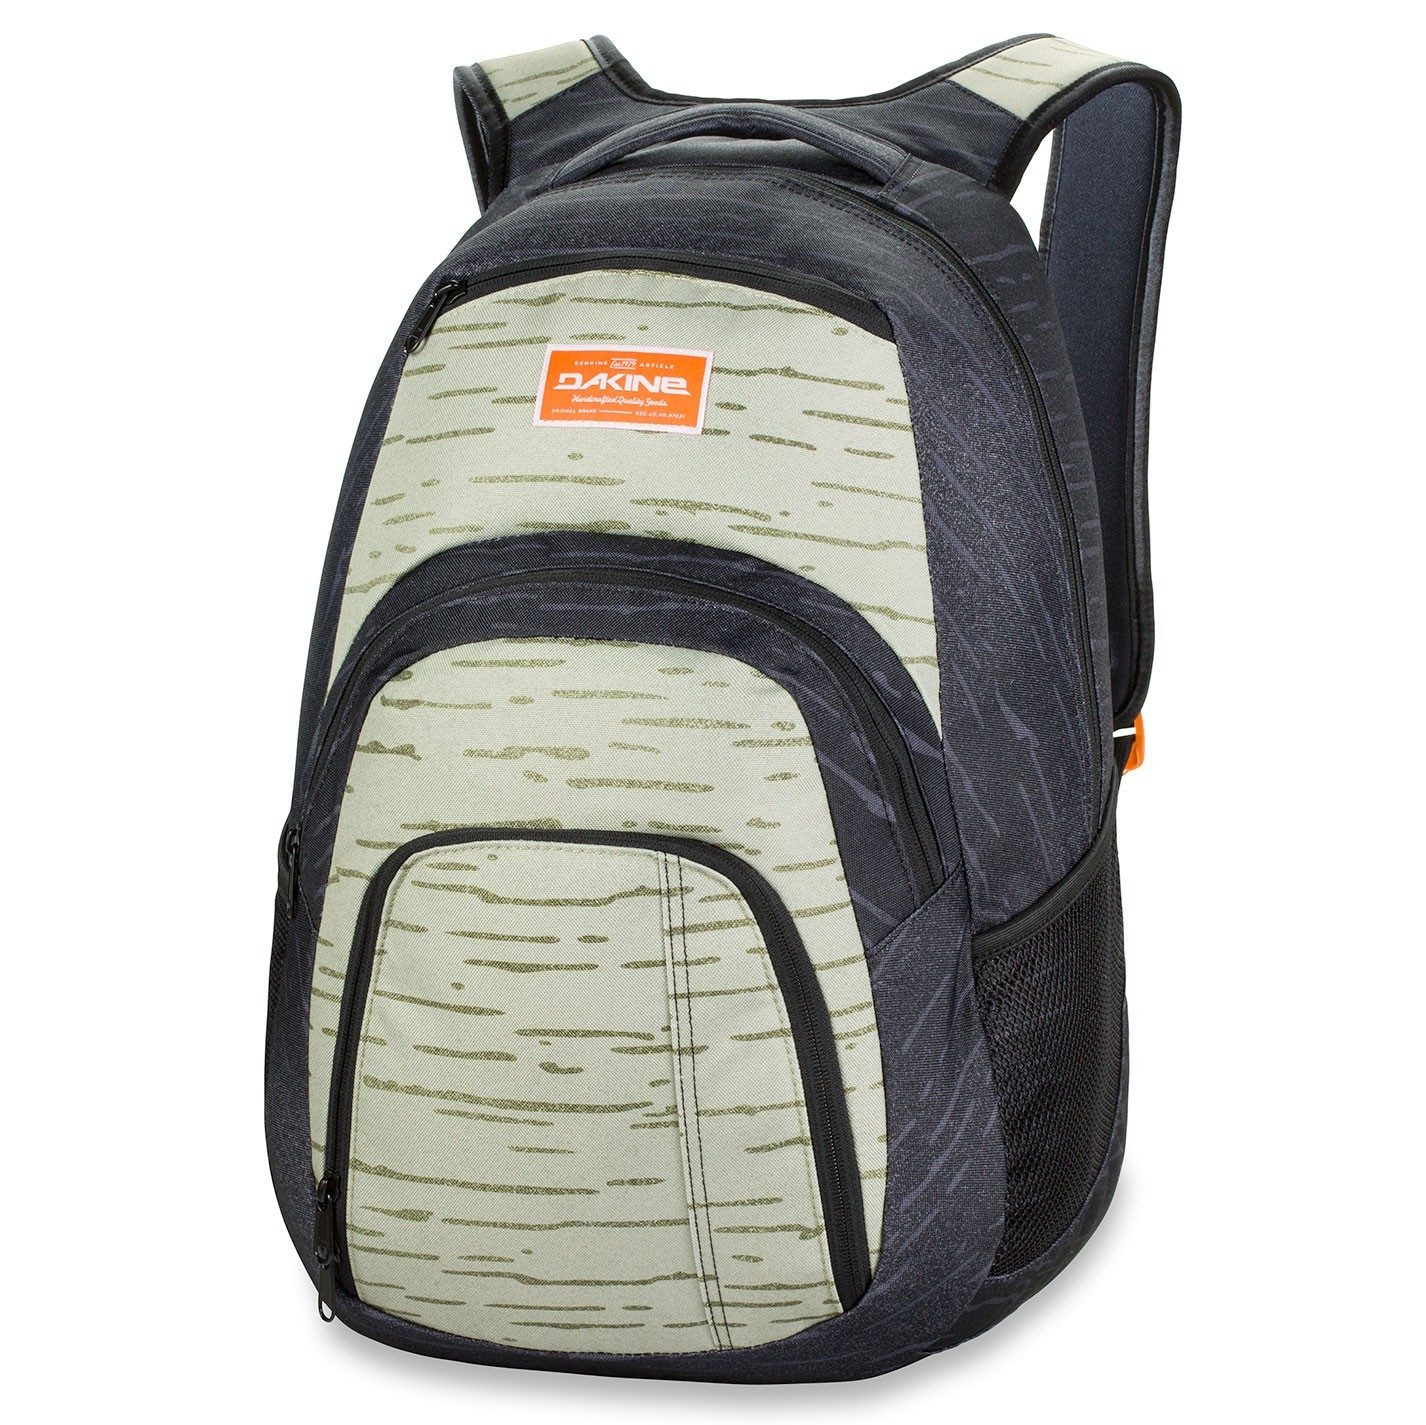 Школьные Рюкзак Dakine Campus 25L Birch batoh-dakine-campus-25l-birch.jpg